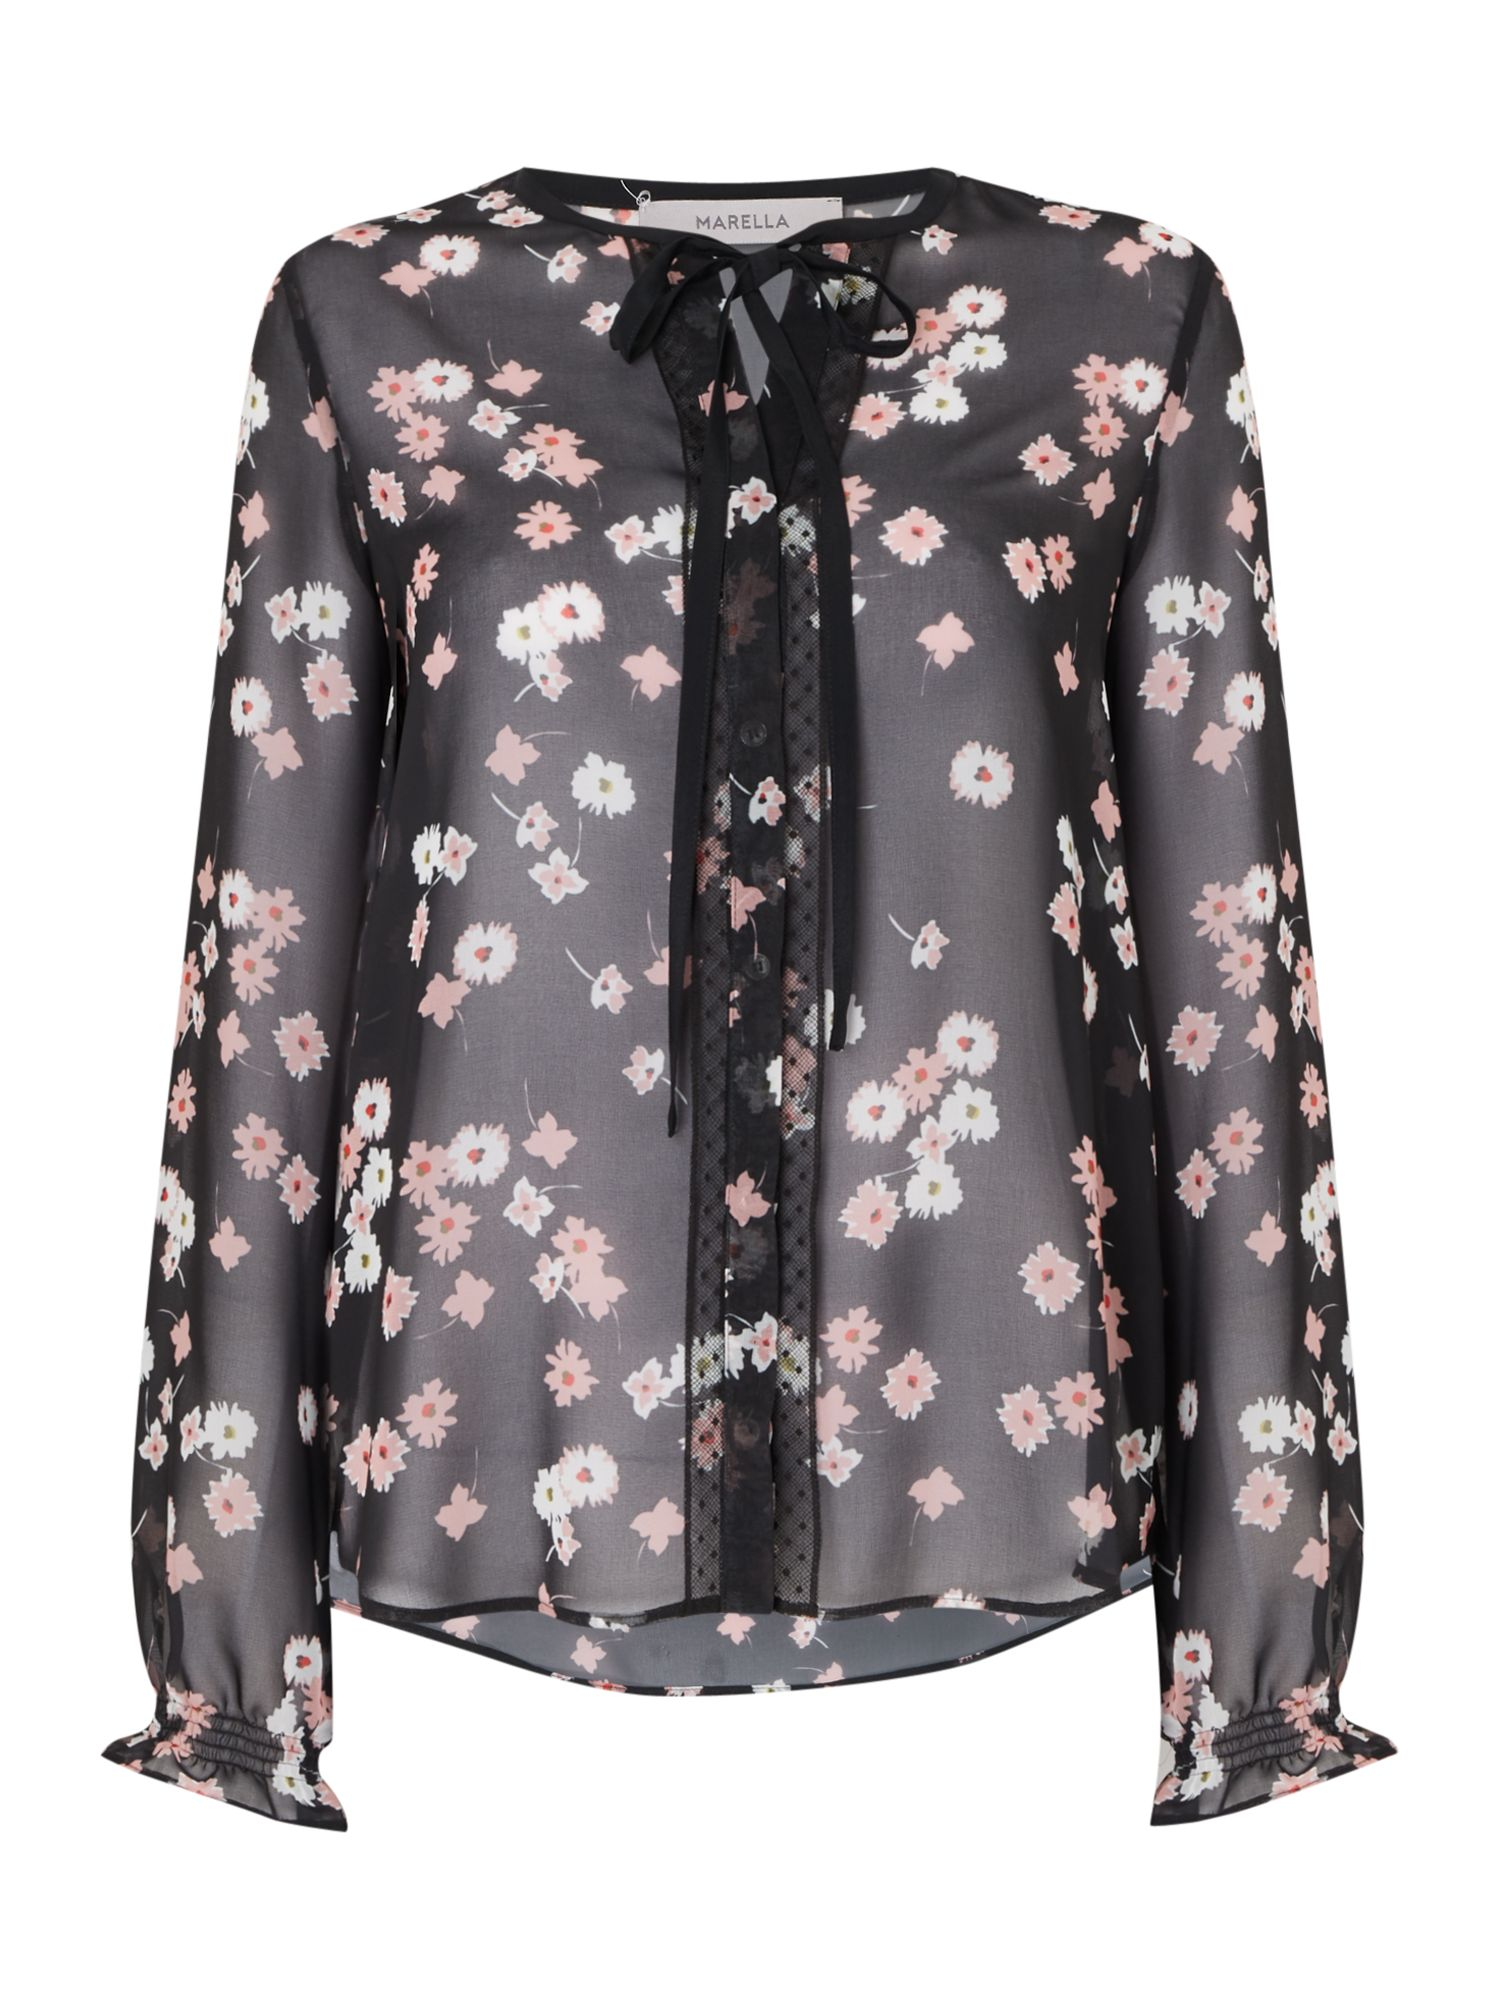 Marella Ozio printed floral top, Multi-Coloured